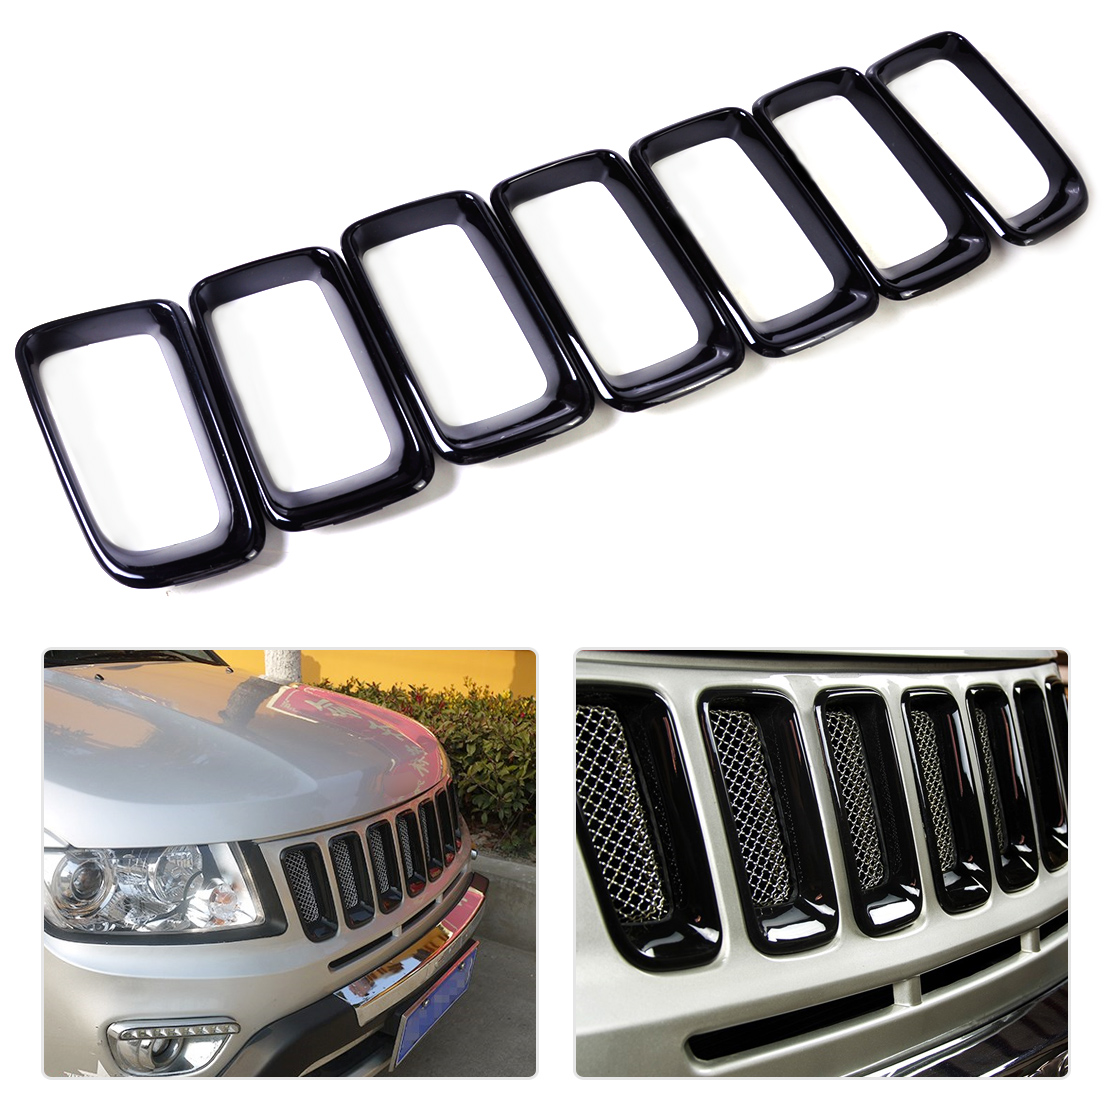 beler 7pcs Black Front Grille Vent Hole Insert Frame Cover Trim Billet Vertical for Jeep Compass 2011 2012 2013 2014 2015 2016